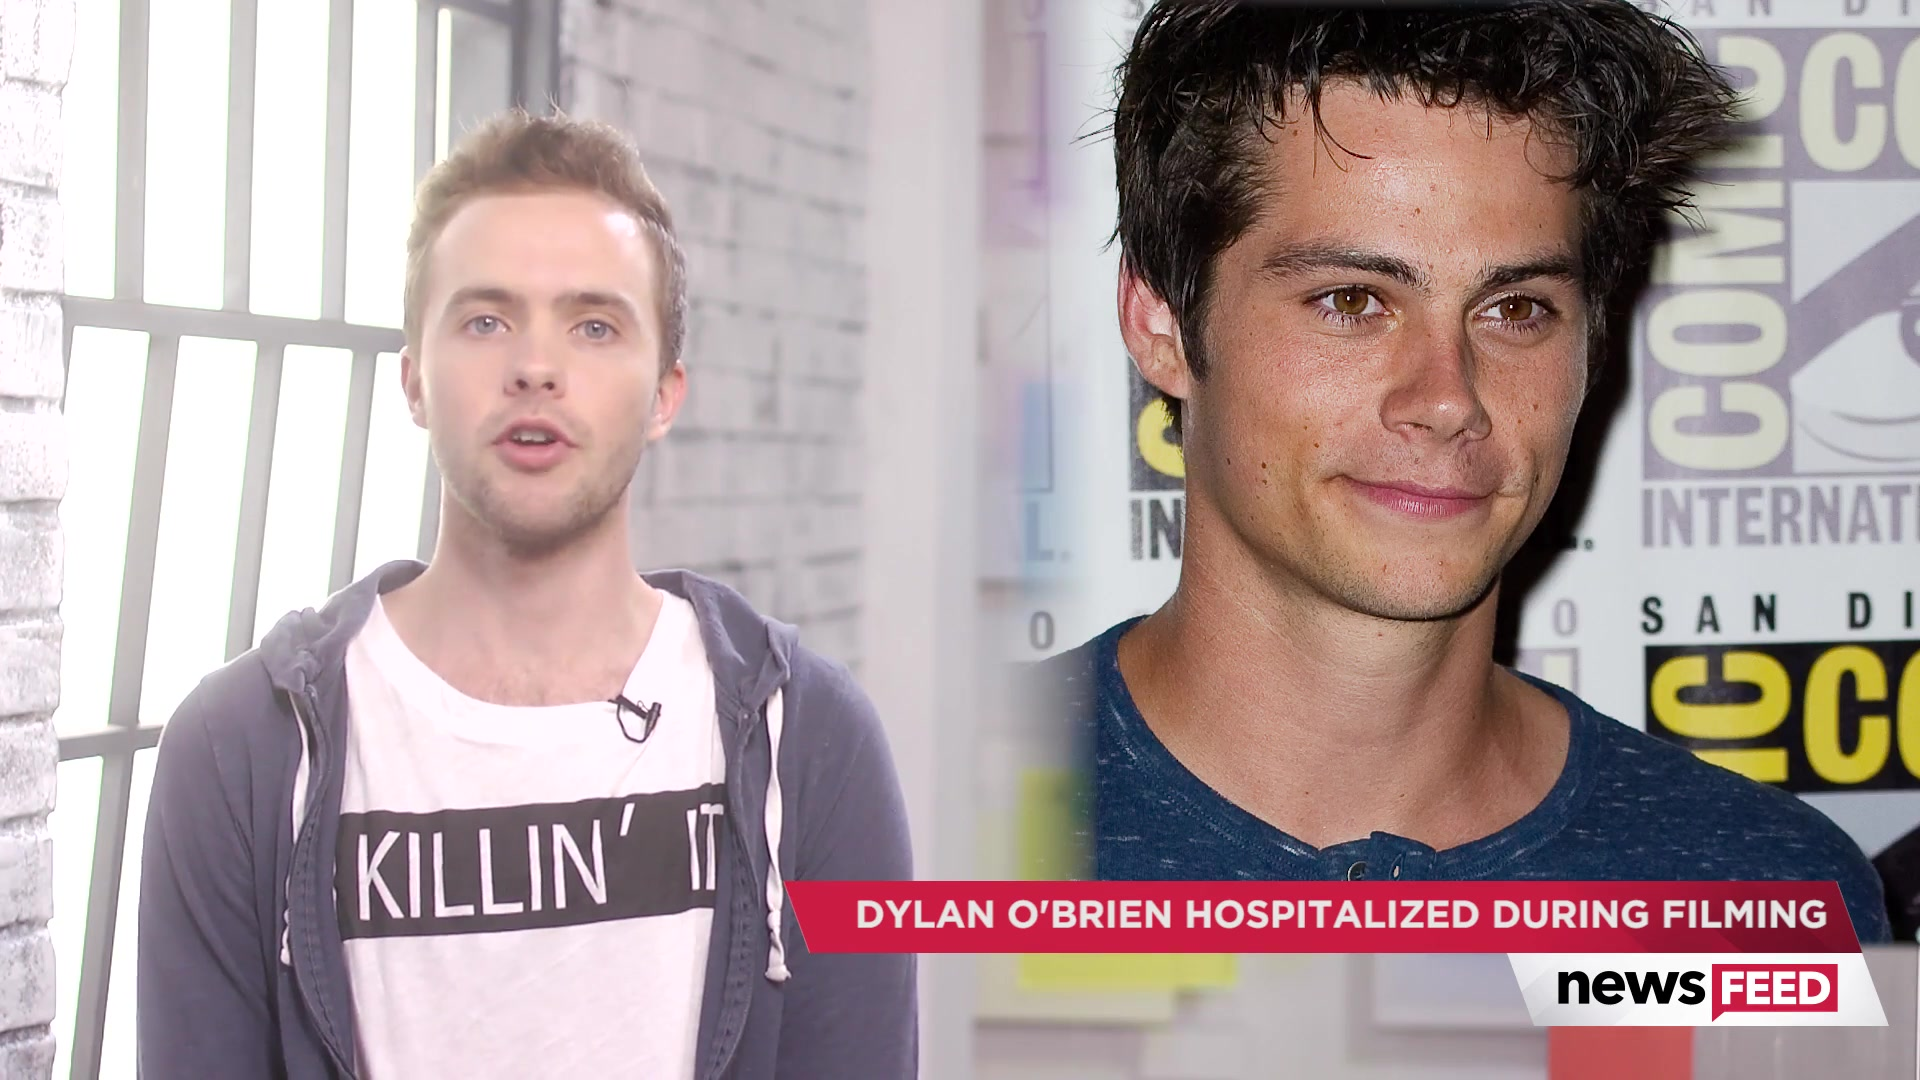 Dylan O'Brien Severely Injured on Set of Maze Runner: The Death Cure